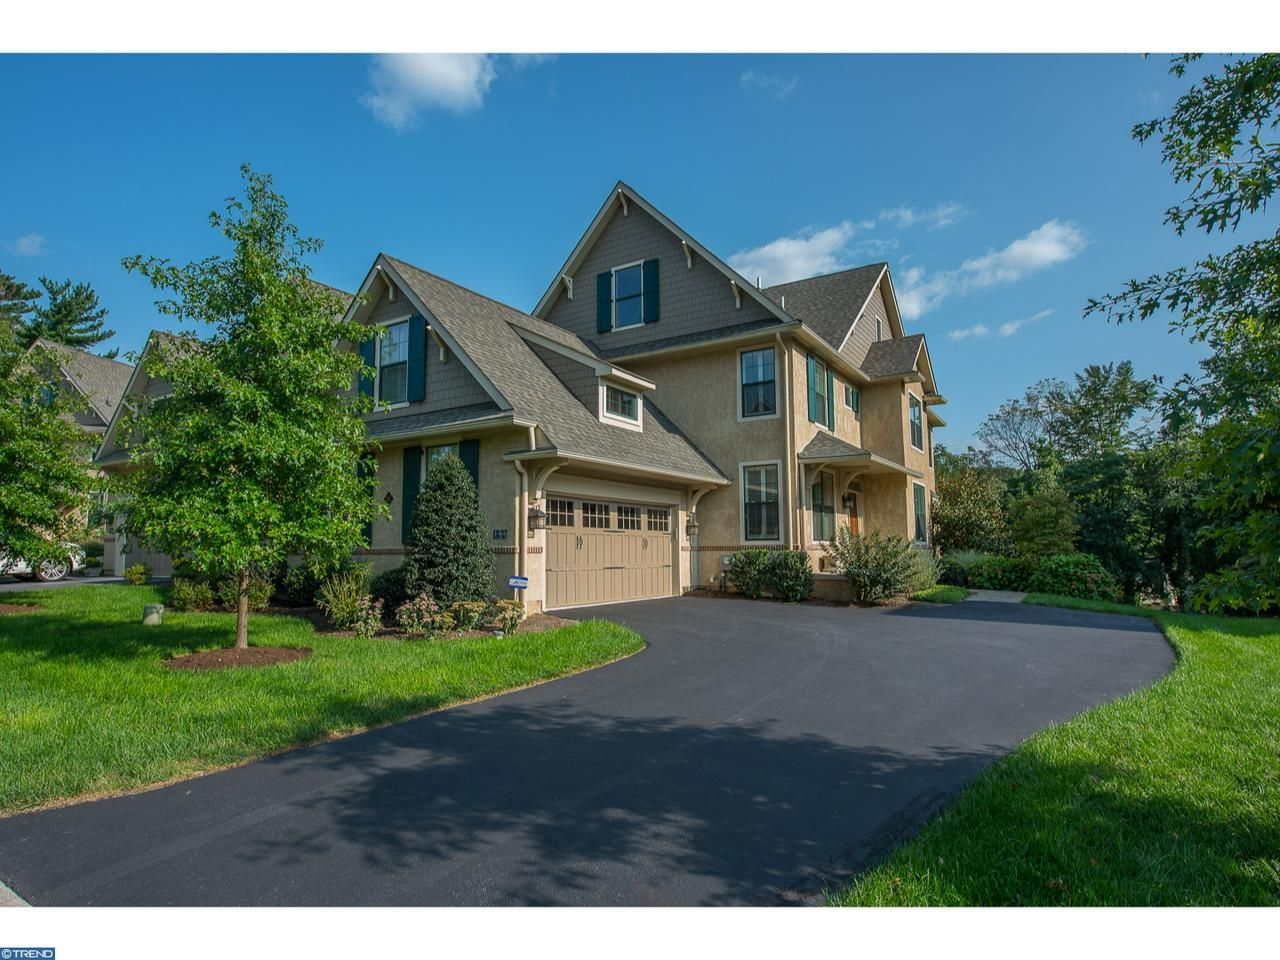 144 TRAYMORE LN, ROSE VALLEY Home, Delaware county